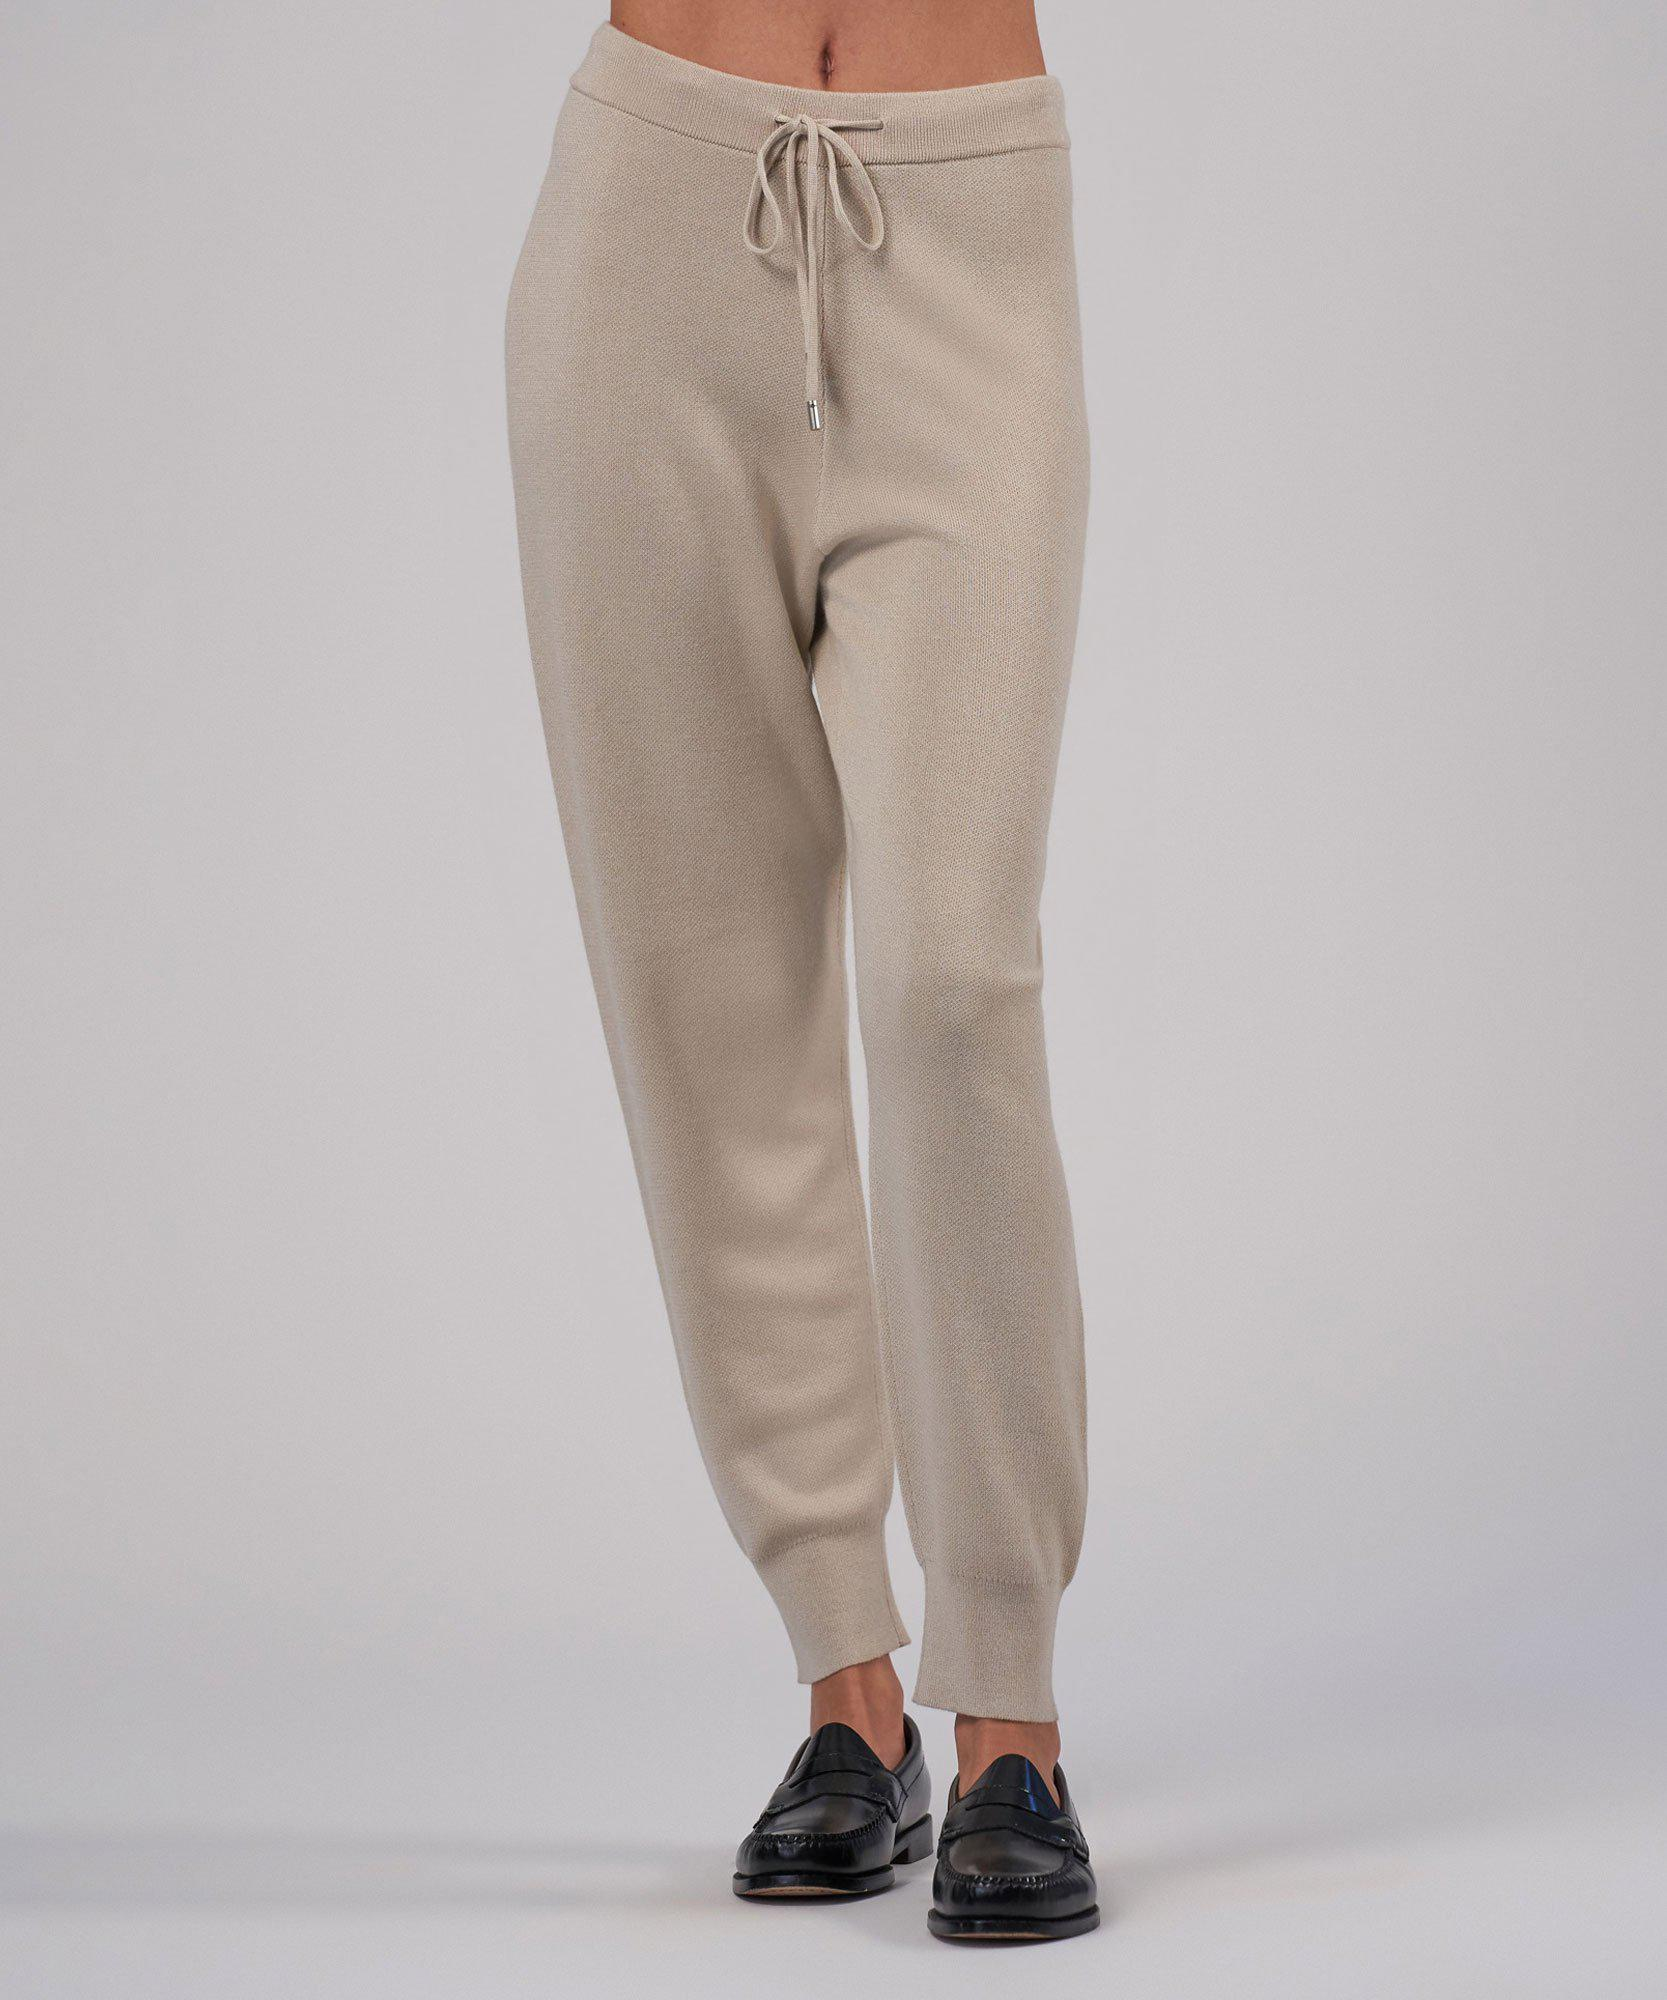 Cashmere Silk Pull-On Pant - Canvas